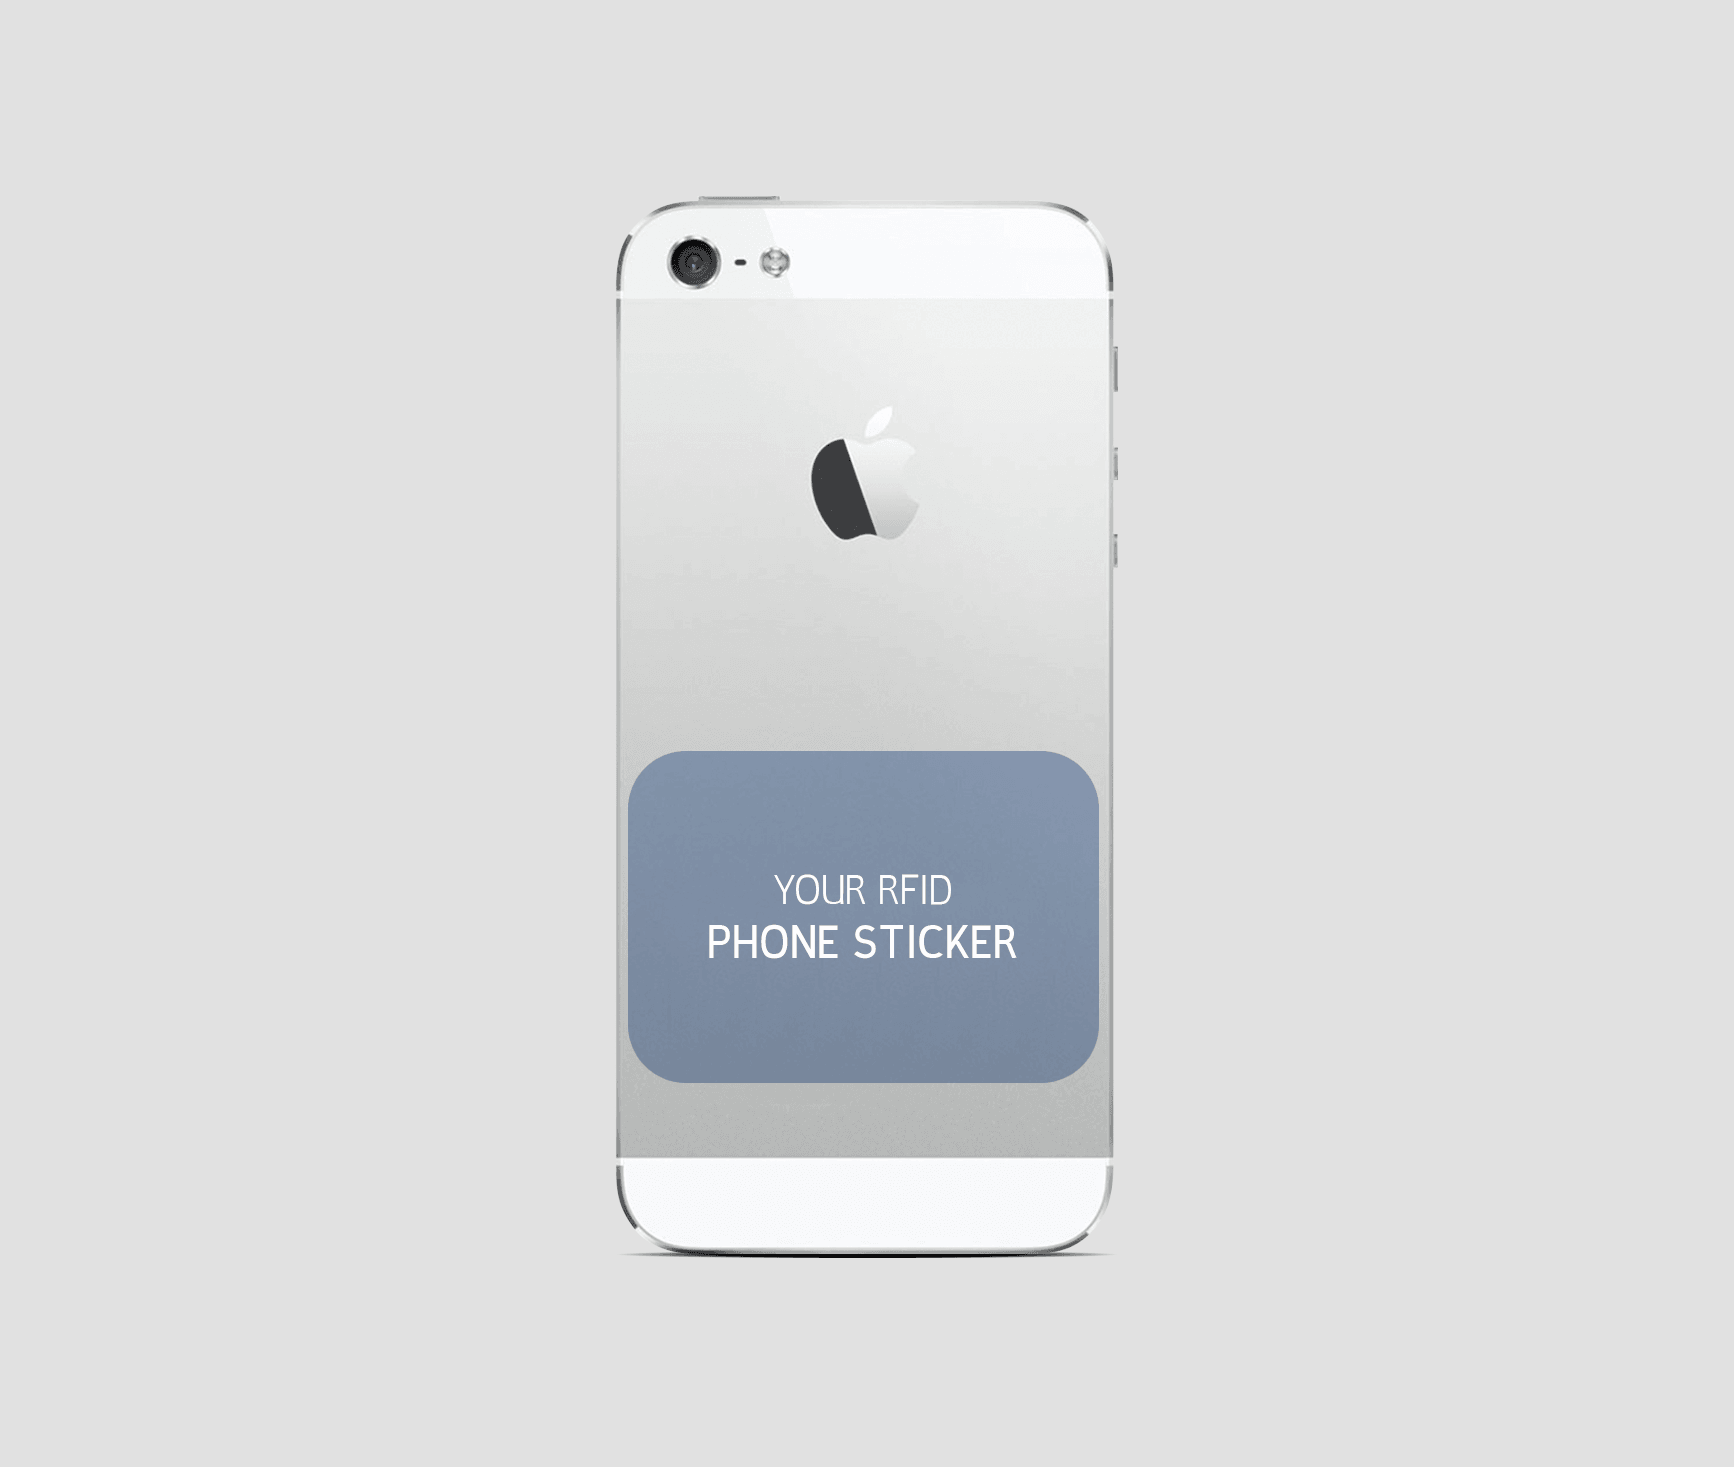 Phone sticker ou smart object intégré à la carte